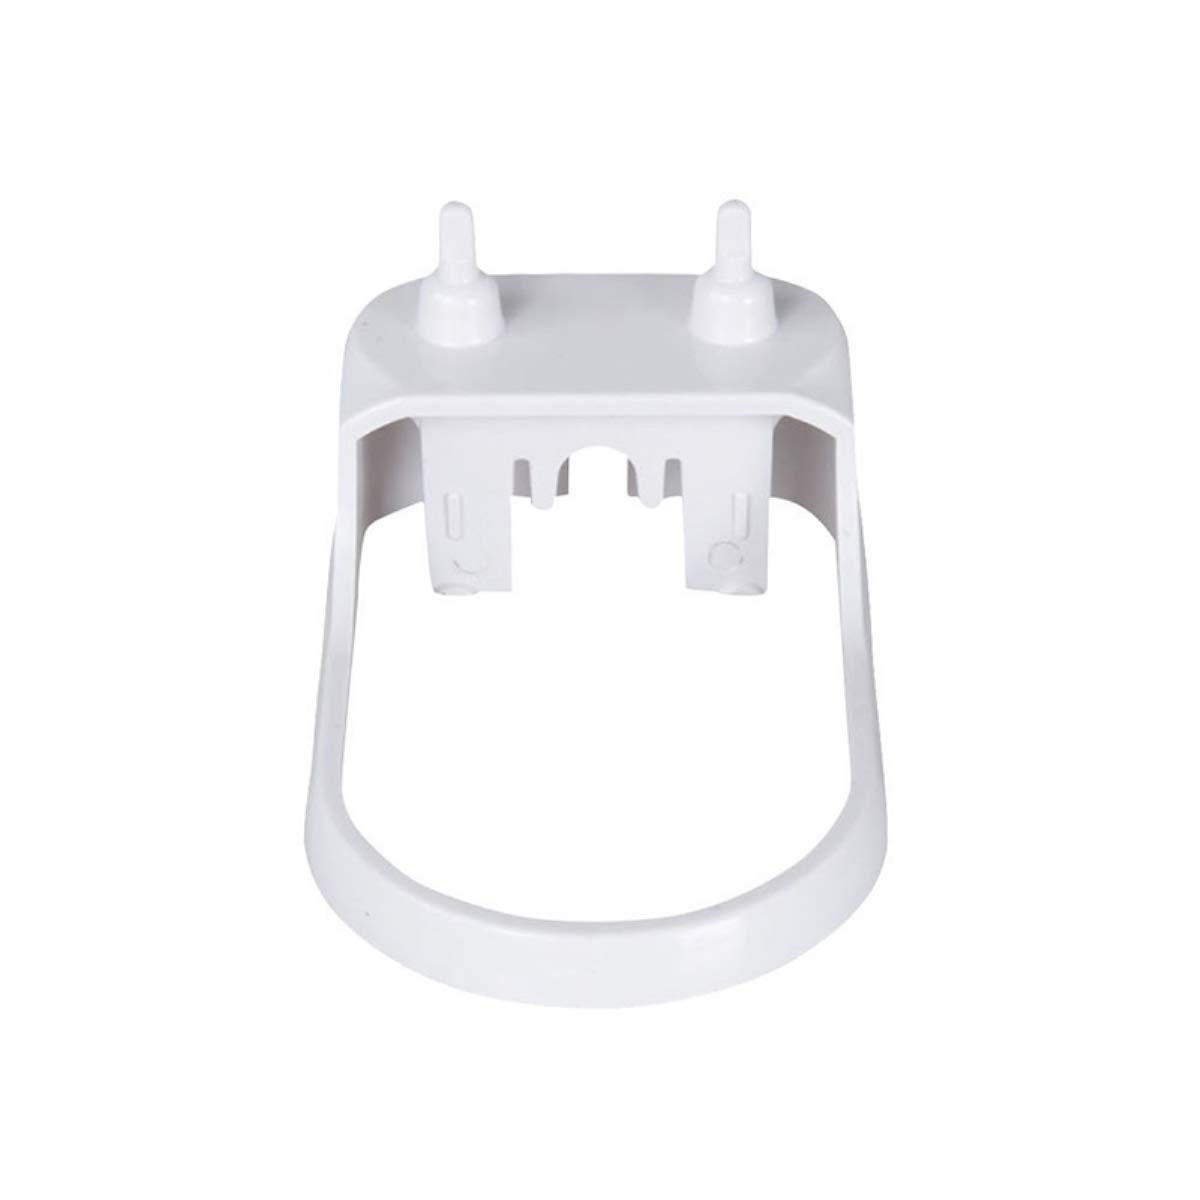 IMIKE Electric Toothbrush Heads Holder Stand Toothbrush Charger Stand Base for Philips Sonicare 2 Series HX6730 HX6511 HX6721 HX6512